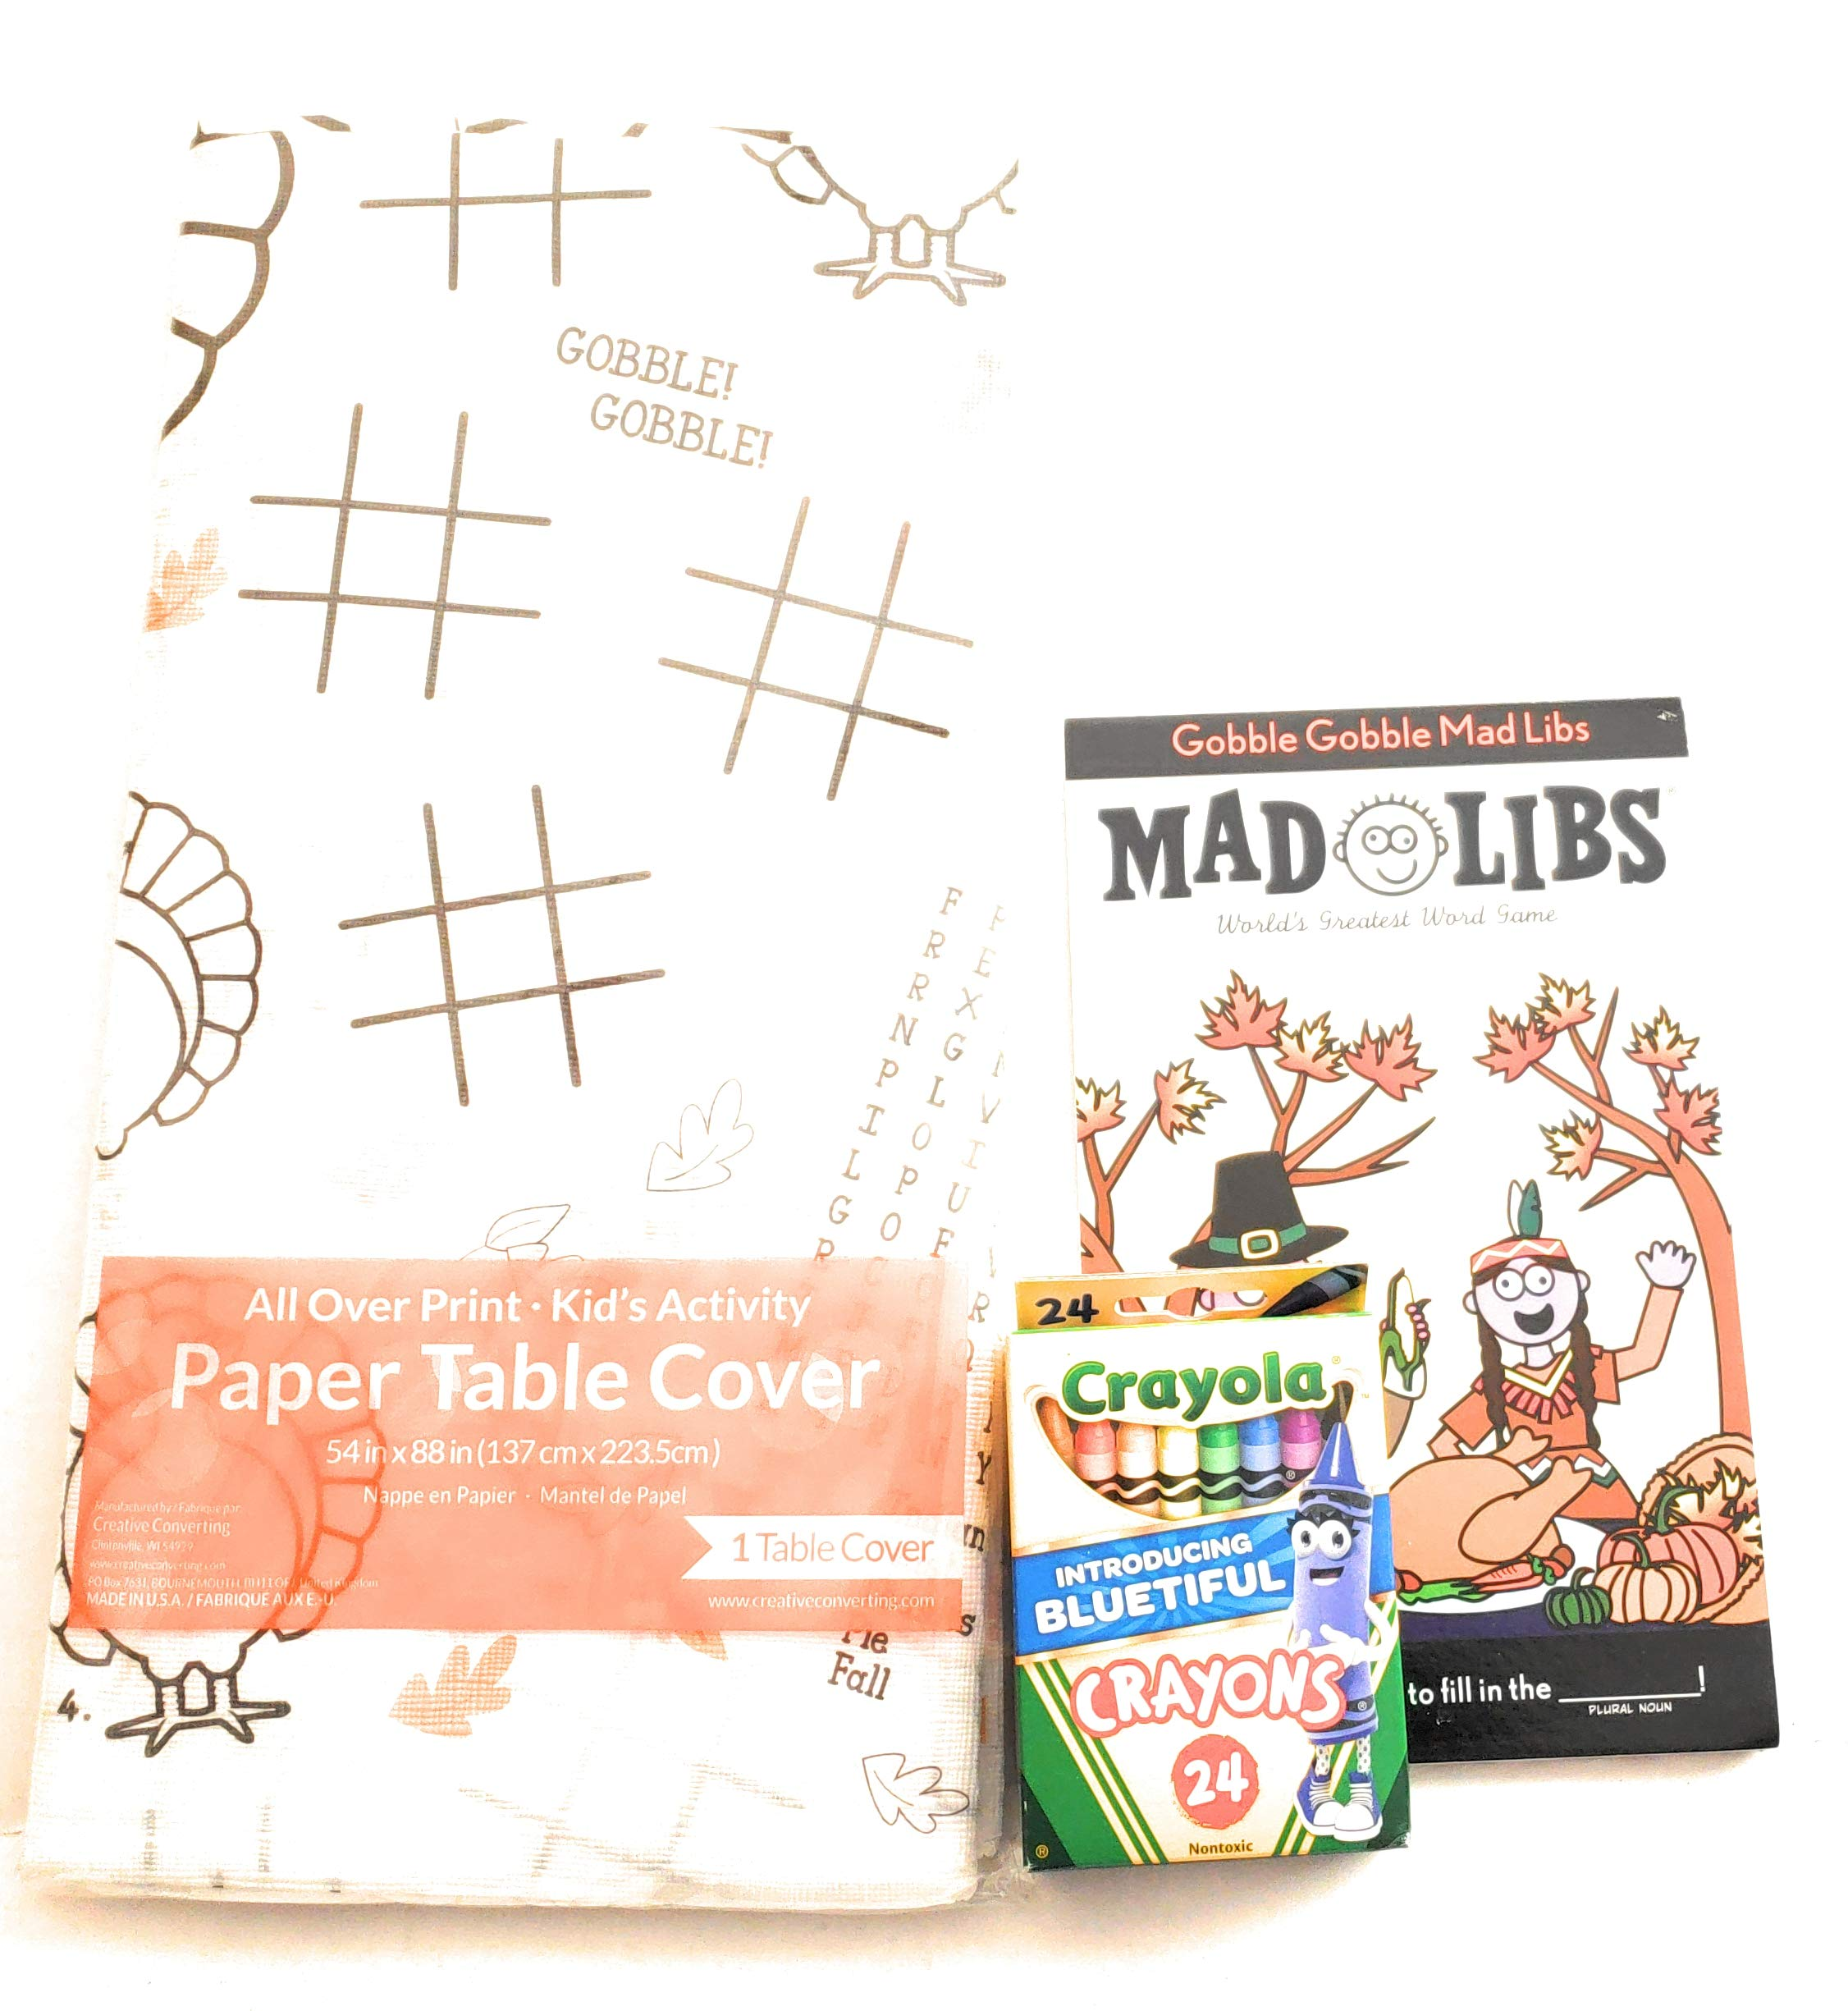 Kids Activity Tablecloth, Gobble, Gobble Mad Libs & Crayons Set, for Thanksgiving, Kids Table Idea, Children's Table Cover, includes table cloth, Mad Libs Book and Crayons for coloring by Various